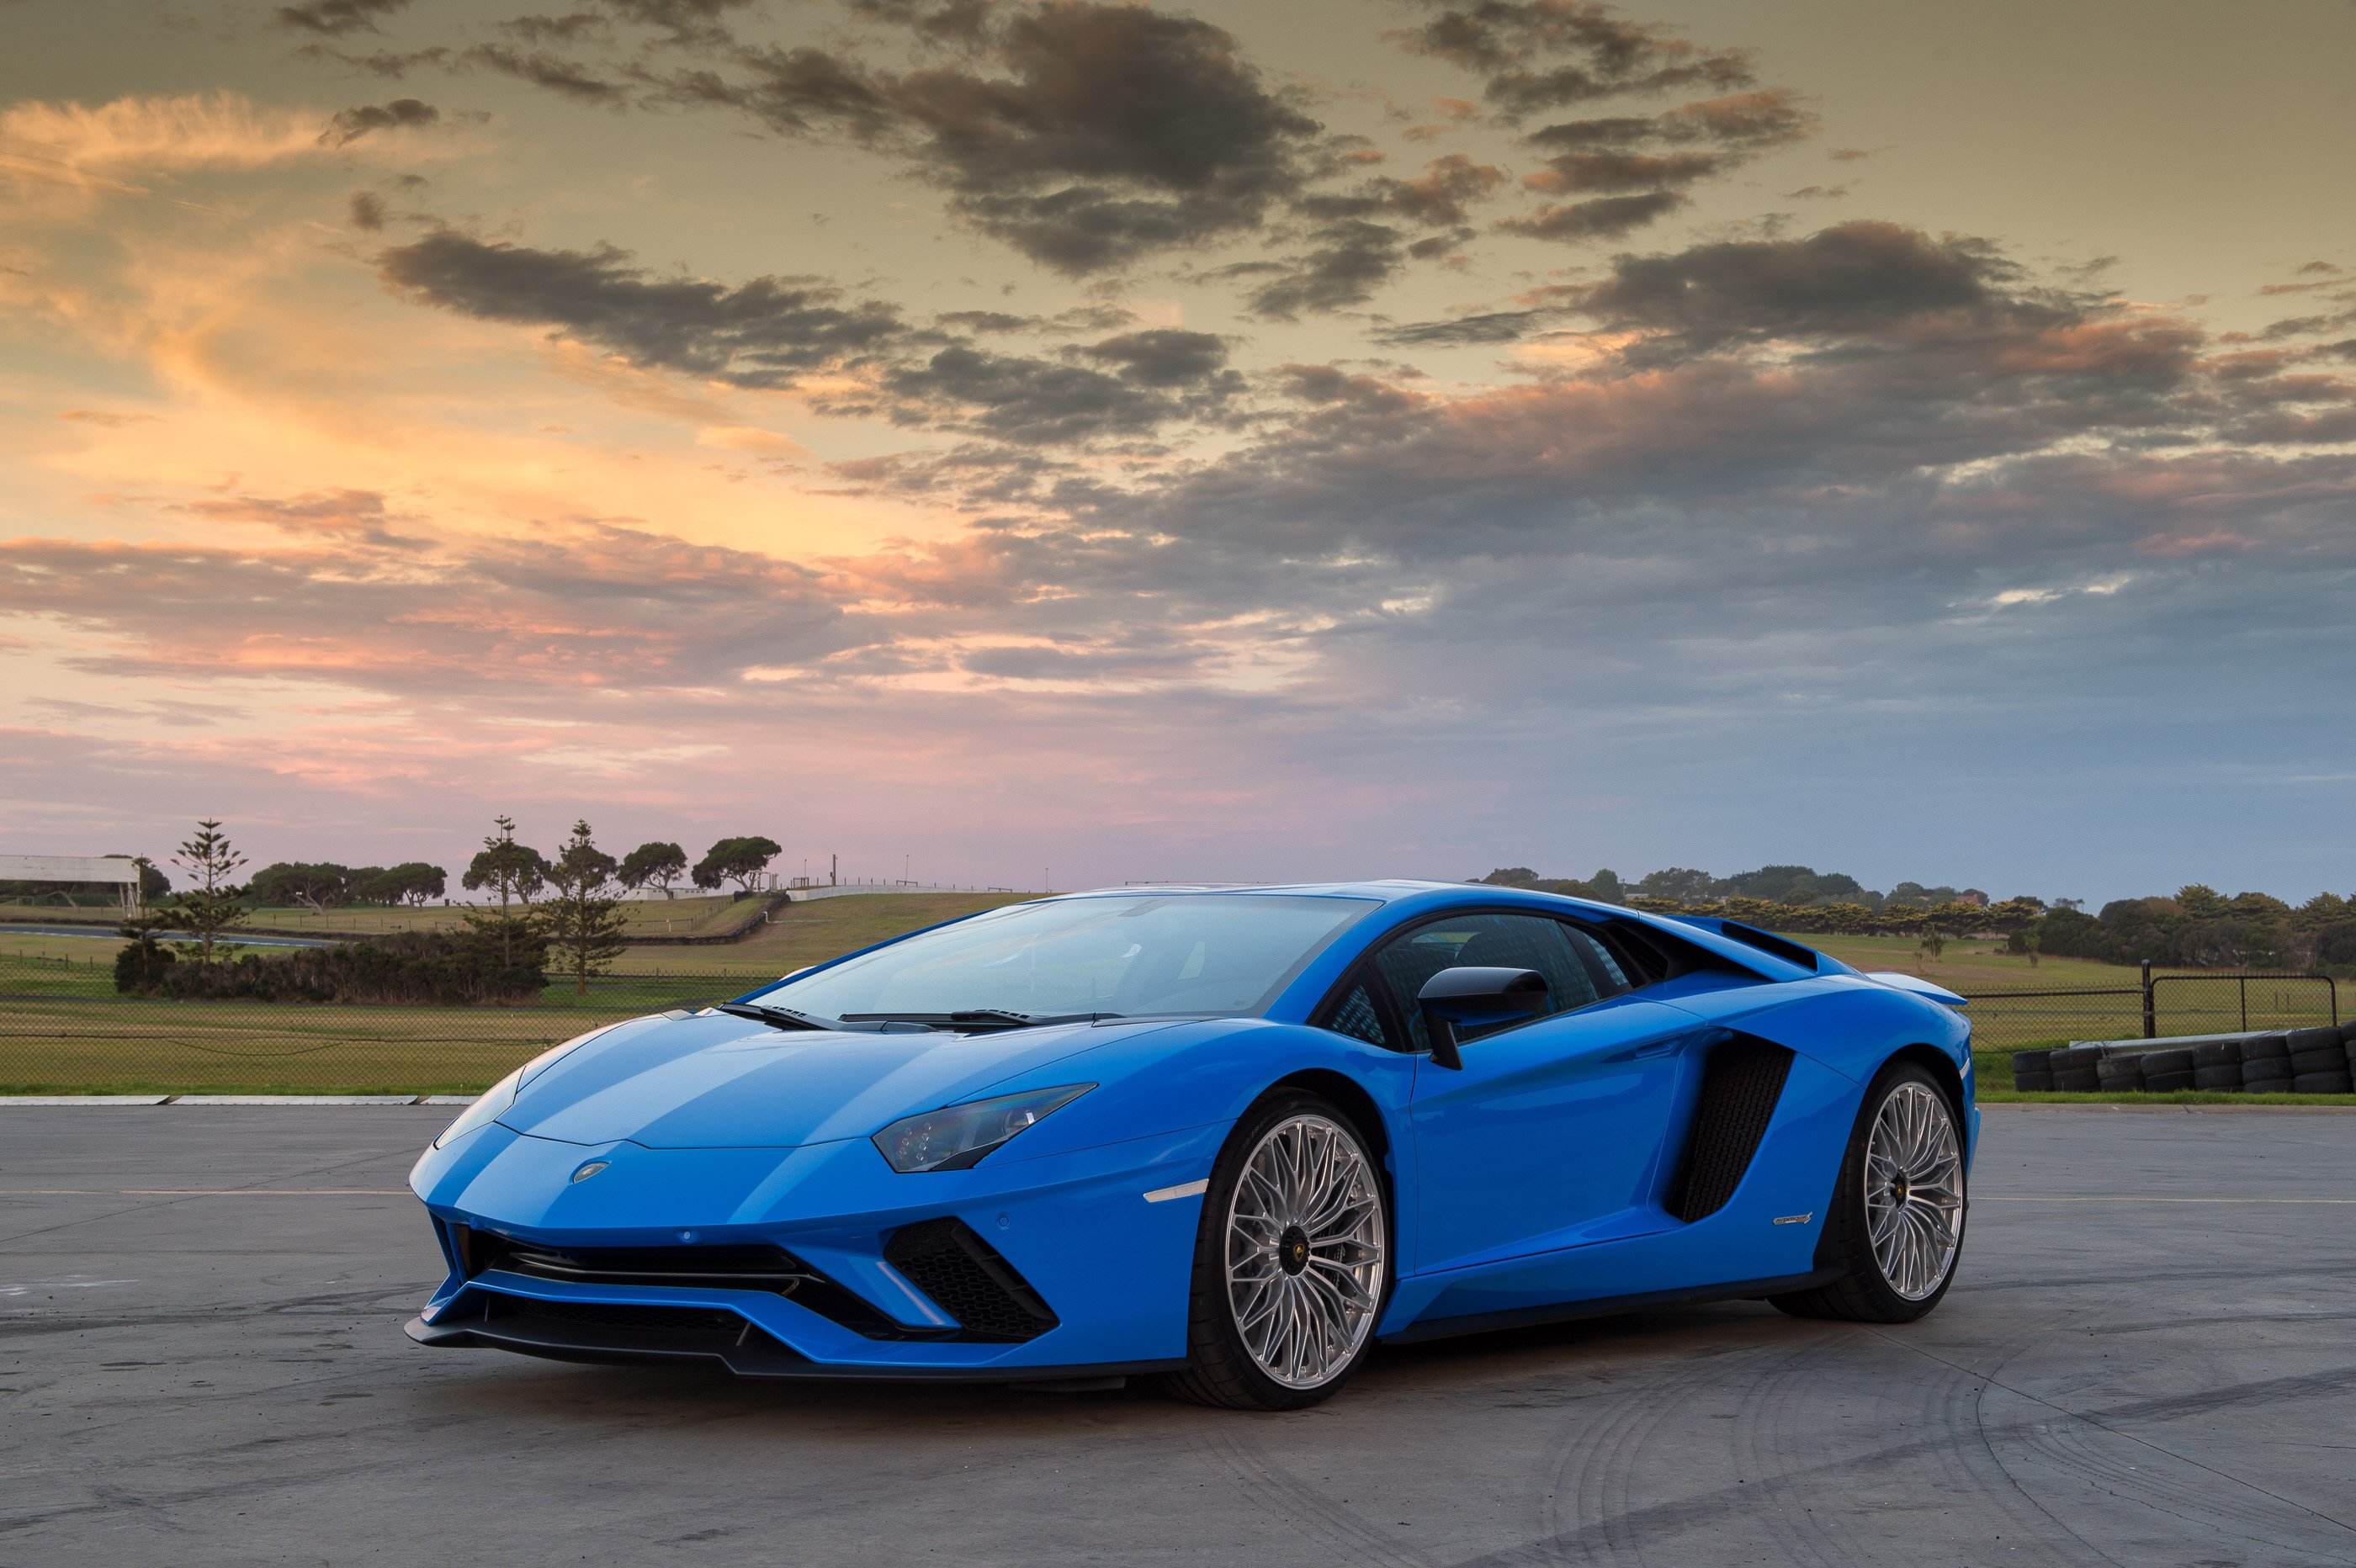 2017 Lamborghini Aventador S review - photos | CarAdvice